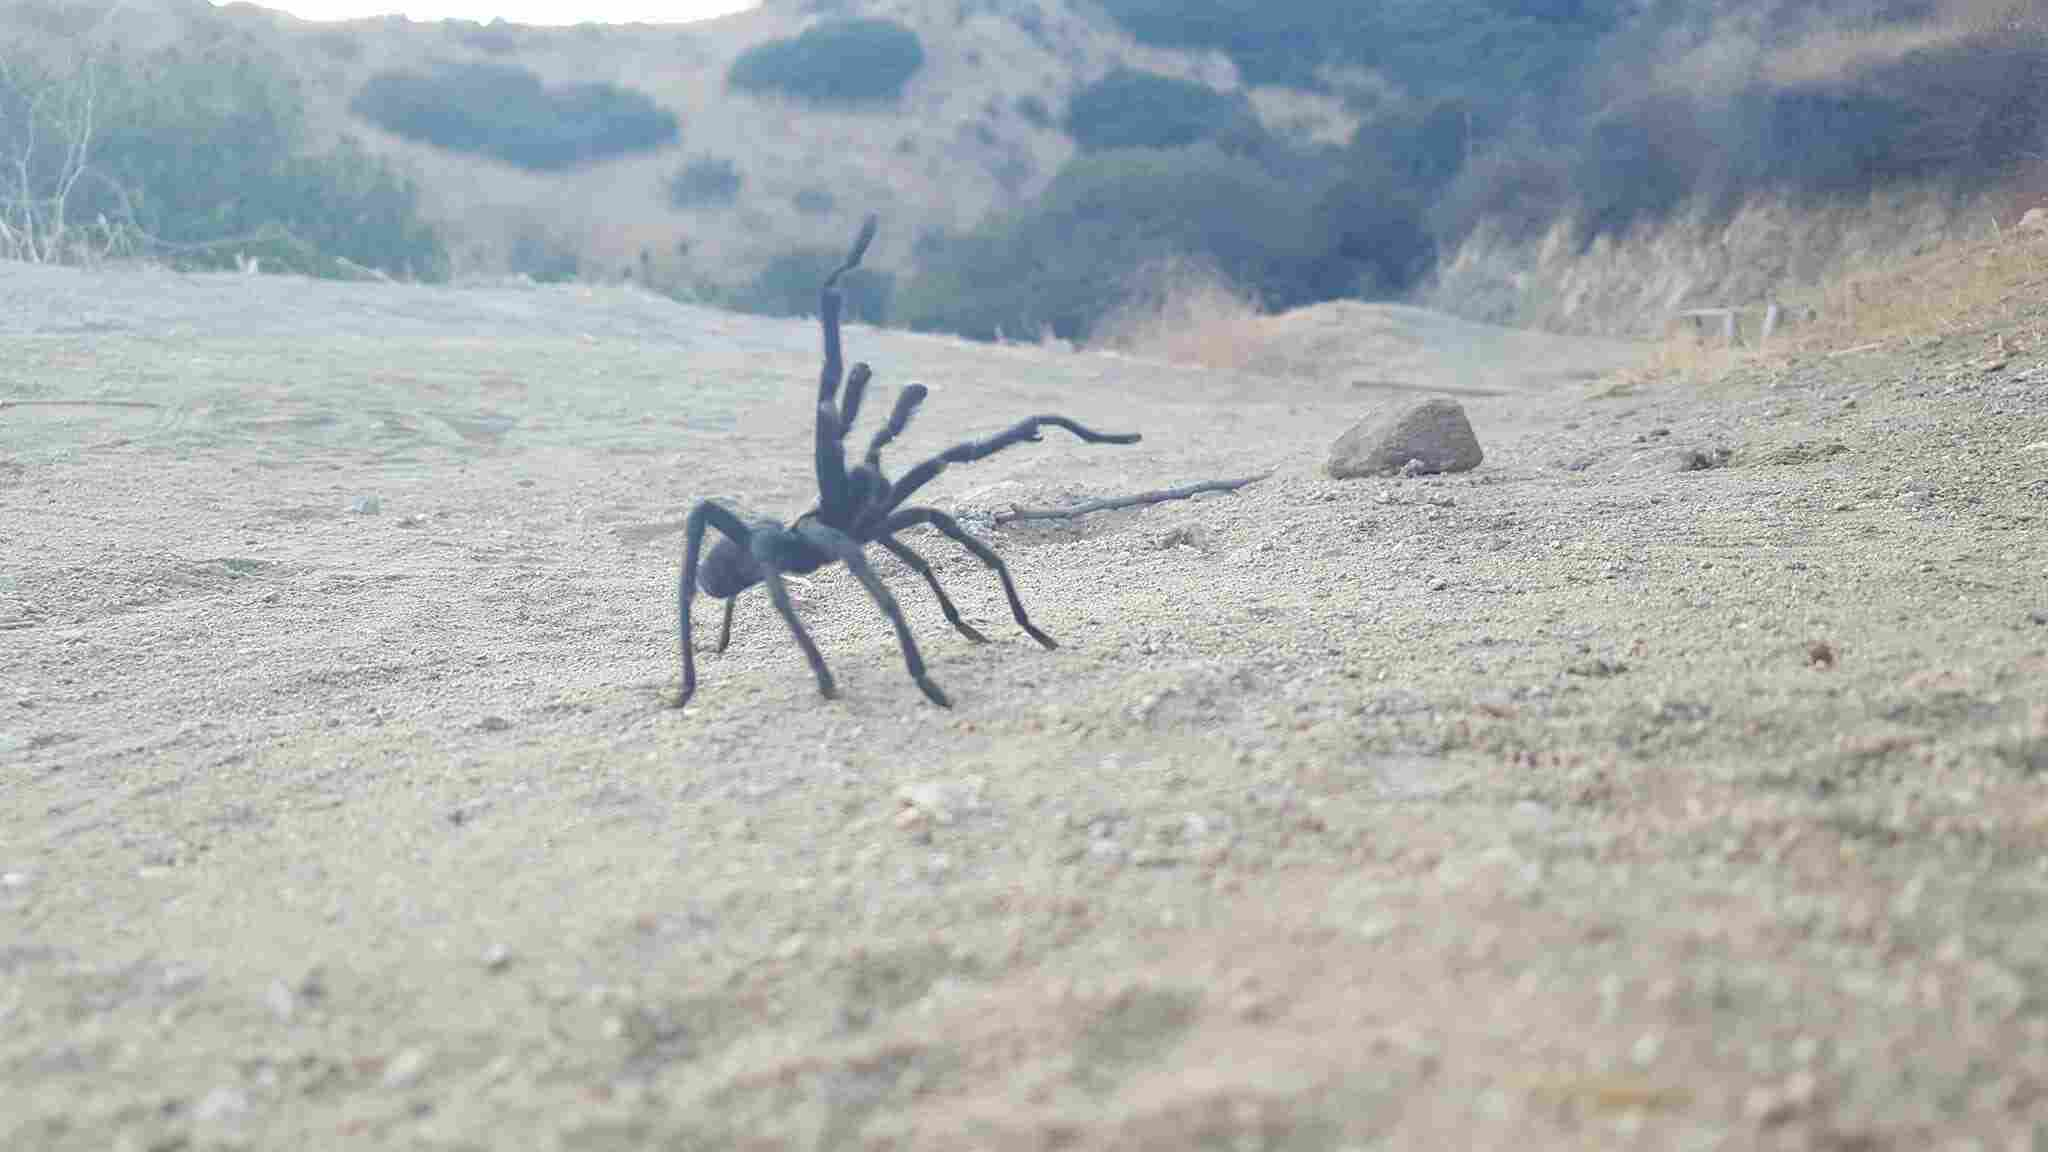 tarantula in the desert